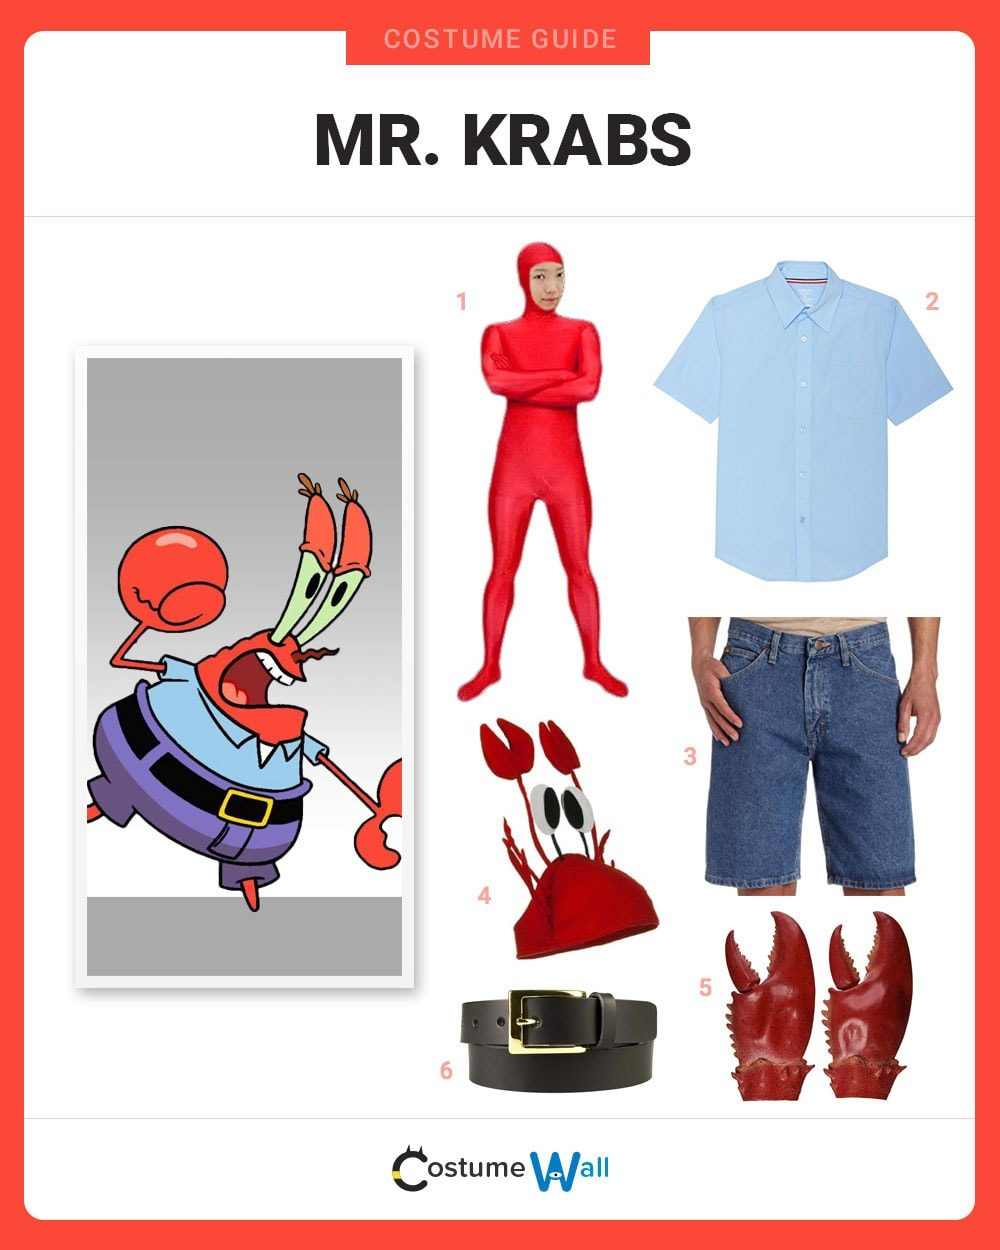 dress like mr krabs costume halloween and cosplay guides